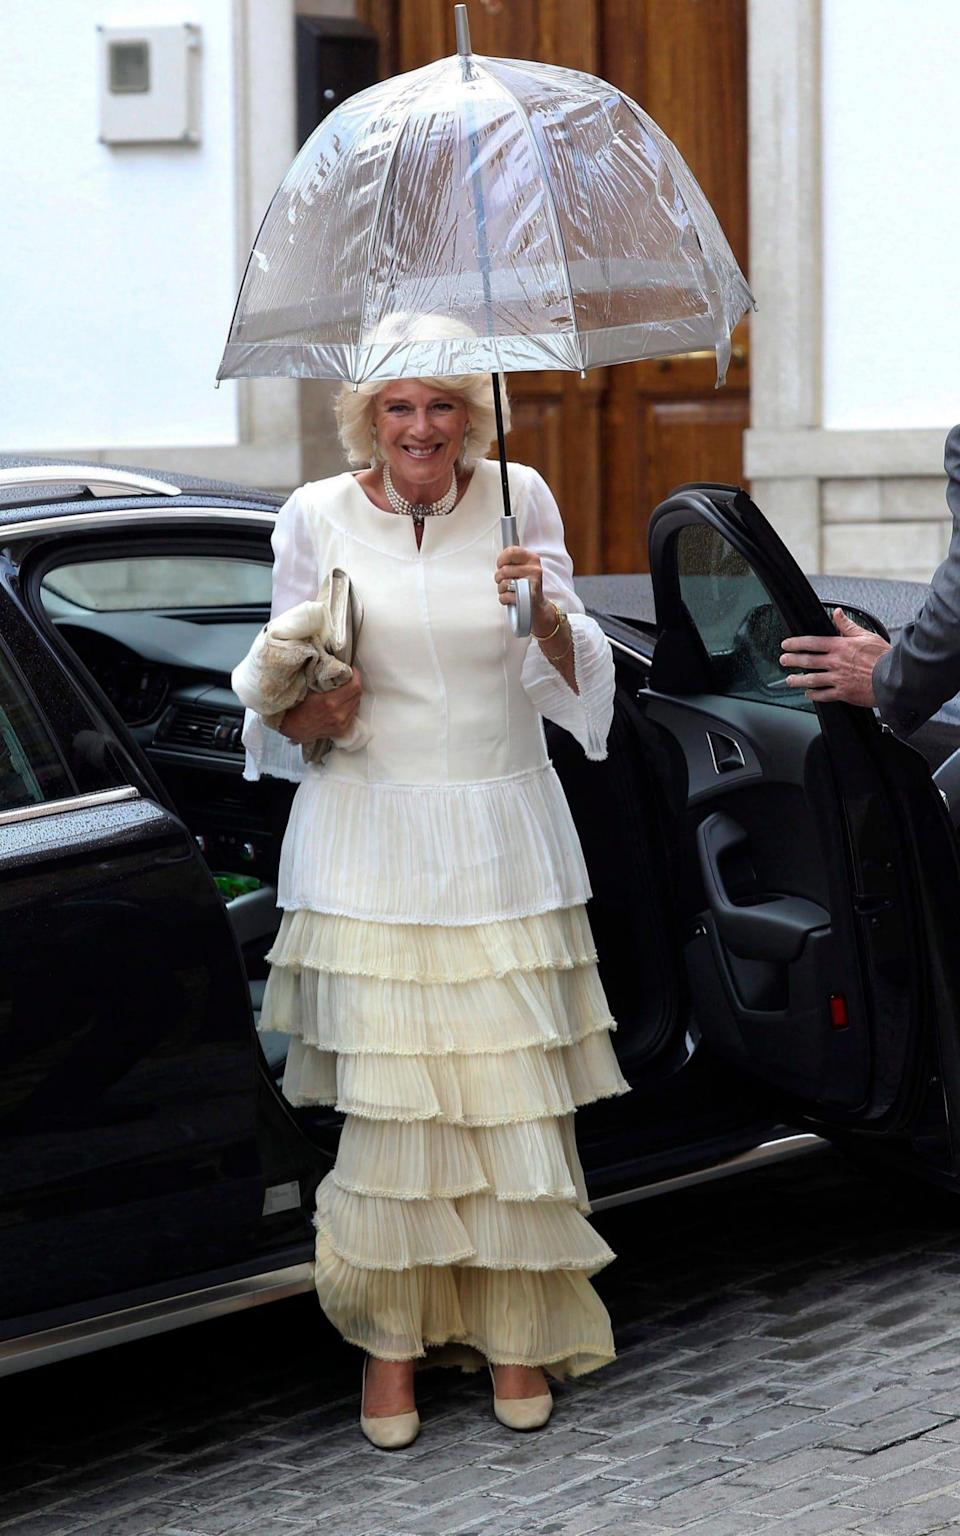 Camilla, the Duchess of Cornwall, was one of a number of high profile guests at the couple's wedding in May 2016 - Credit: EPA/DANIEL PEREZ